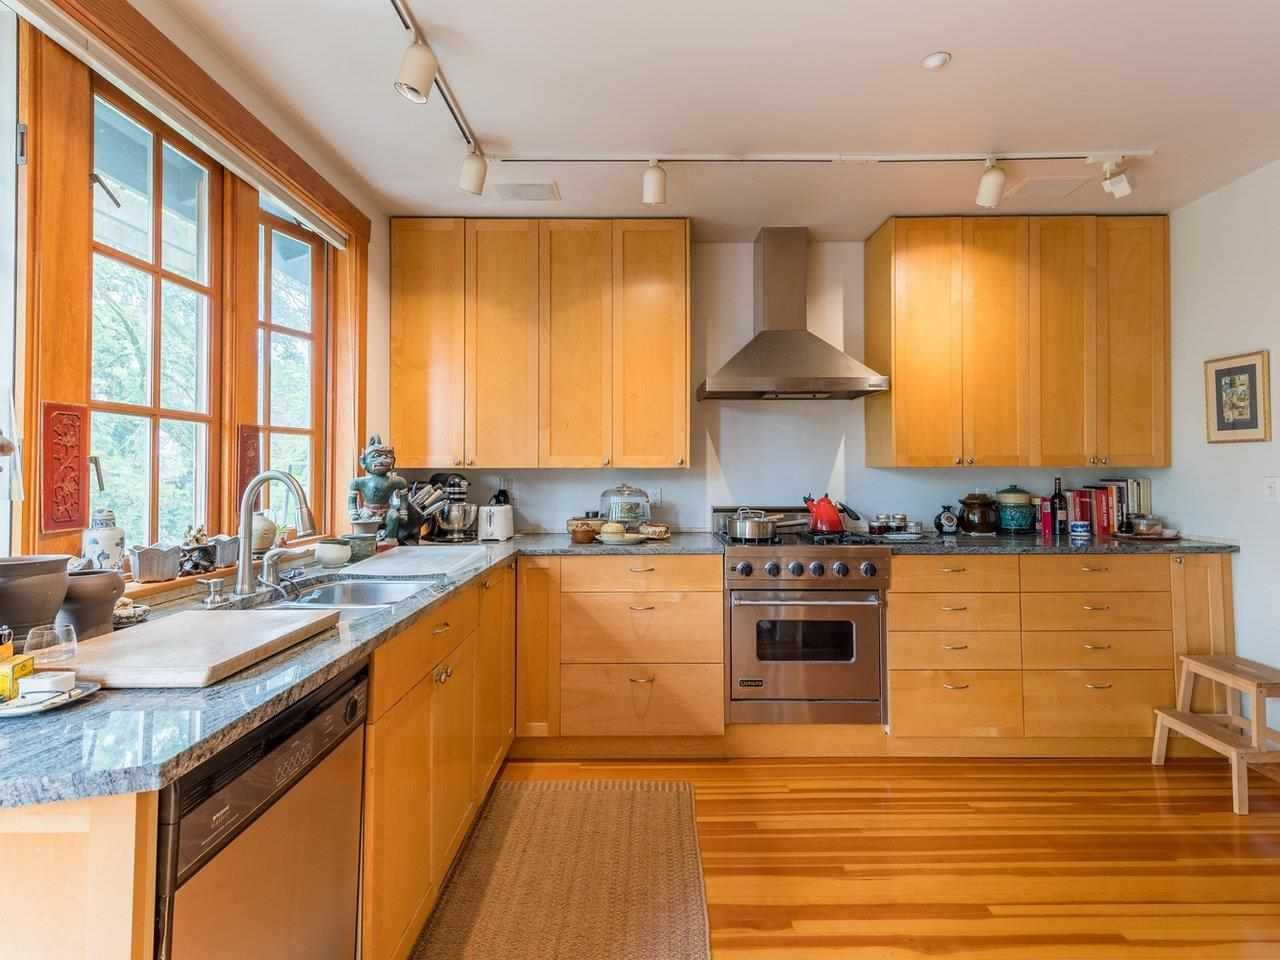 Photo 7: Photos: 2556 W 2ND Avenue in Vancouver: Kitsilano House for sale (Vancouver West)  : MLS®# R2593228